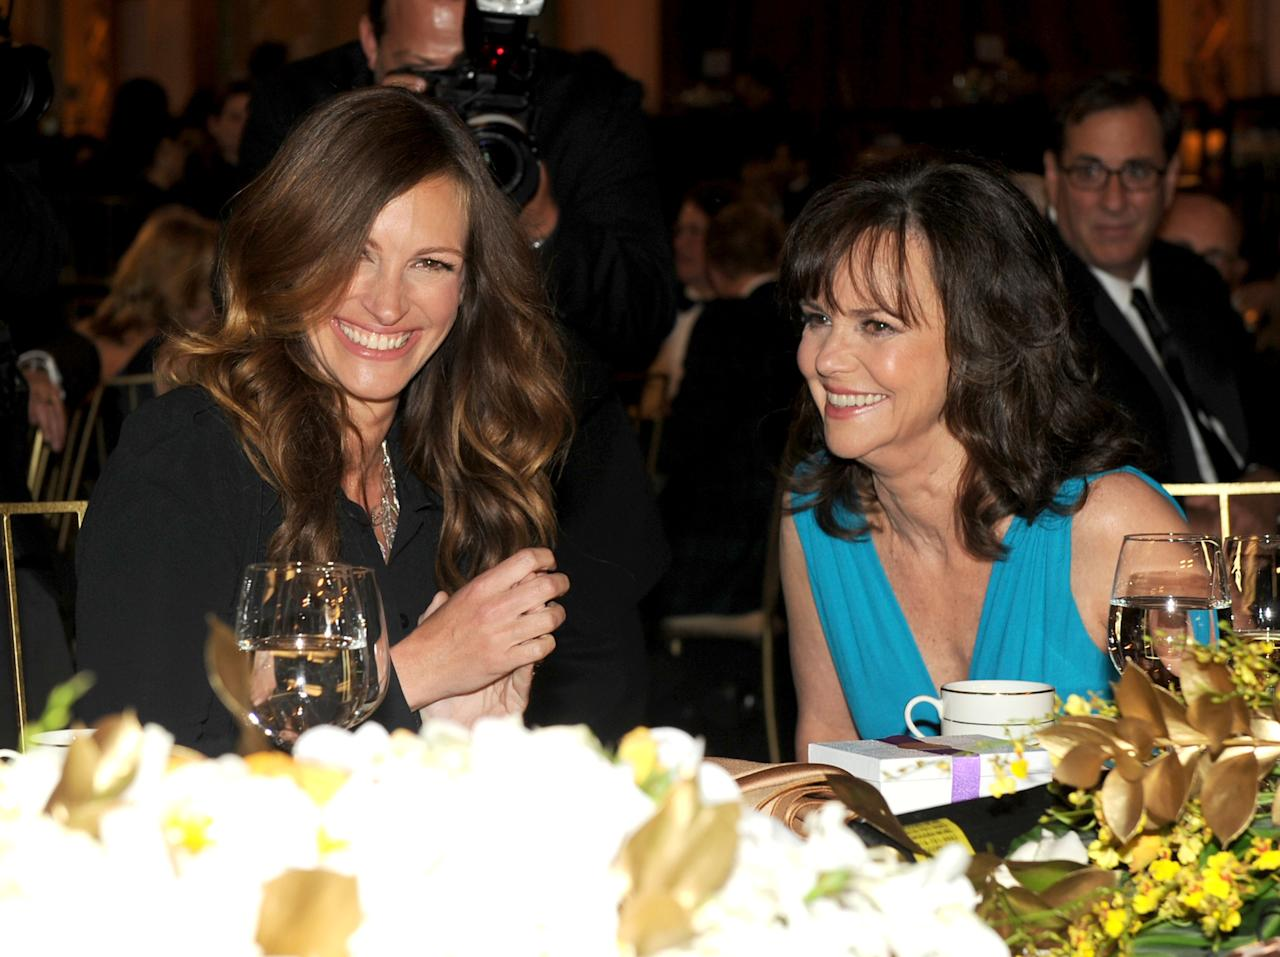 CULVER CITY, CA - JUNE 07:  Actresses Julia Roberts (L) and Sally Field attend the 40th AFI Life Achievement Award honoring Shirley MacLaine held at Sony Pictures Studios on June 7, 2012 in Culver City, California. The AFI Life Achievement Award tribute to Shirley MacLaine will premiere on TV Land on Saturday, June 24 at 9PM ET/PST.  (Photo by Kevin Winter/Getty Images for AFI)